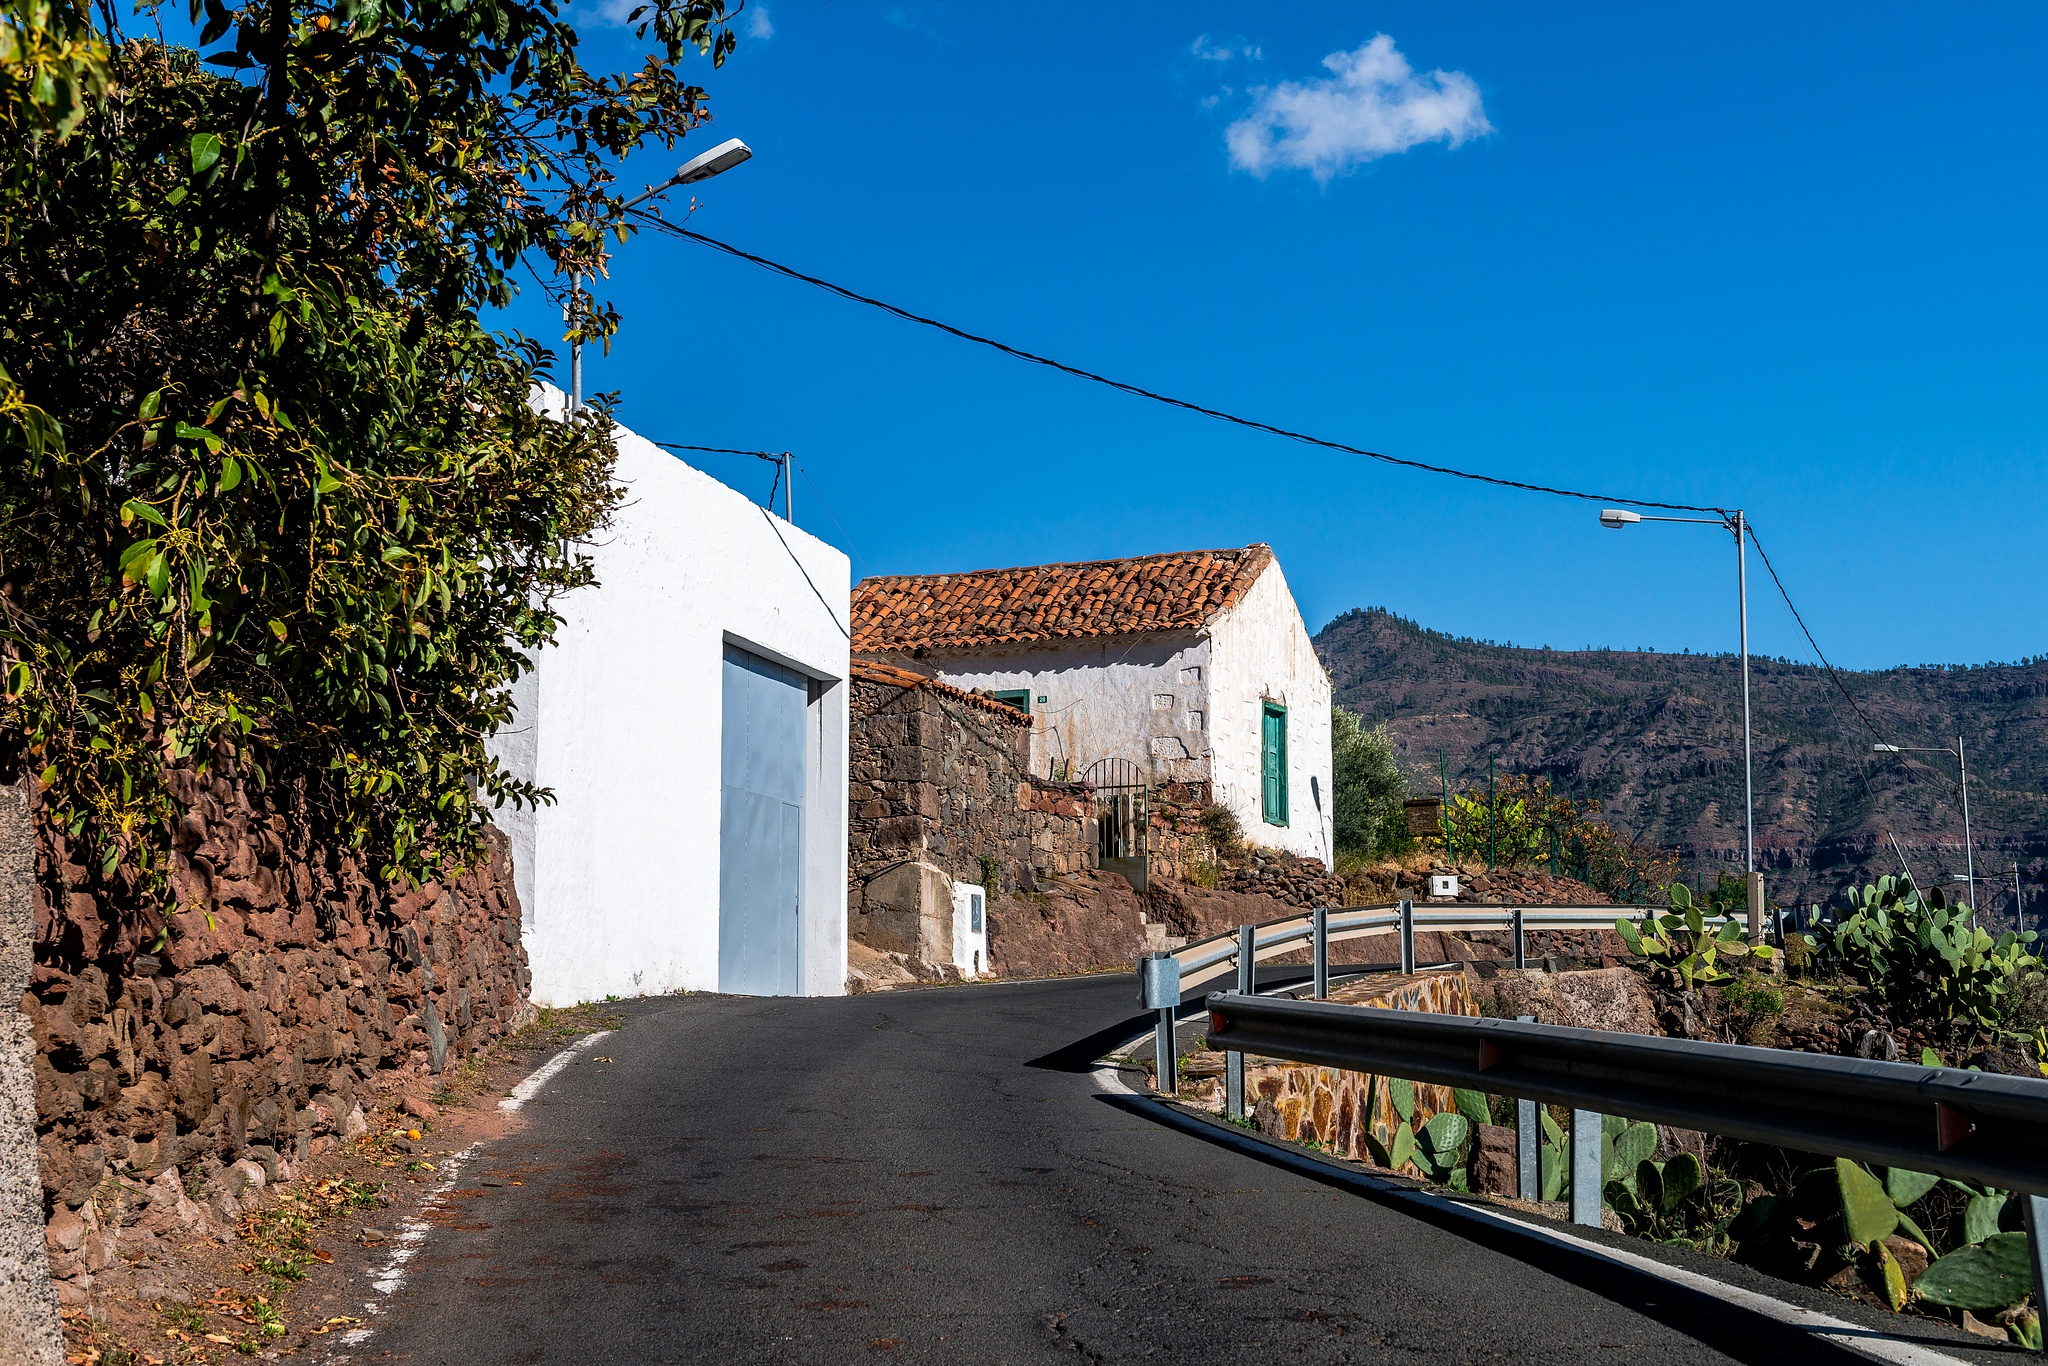 House in a Spanish Village on Gran Canaria by Hyen